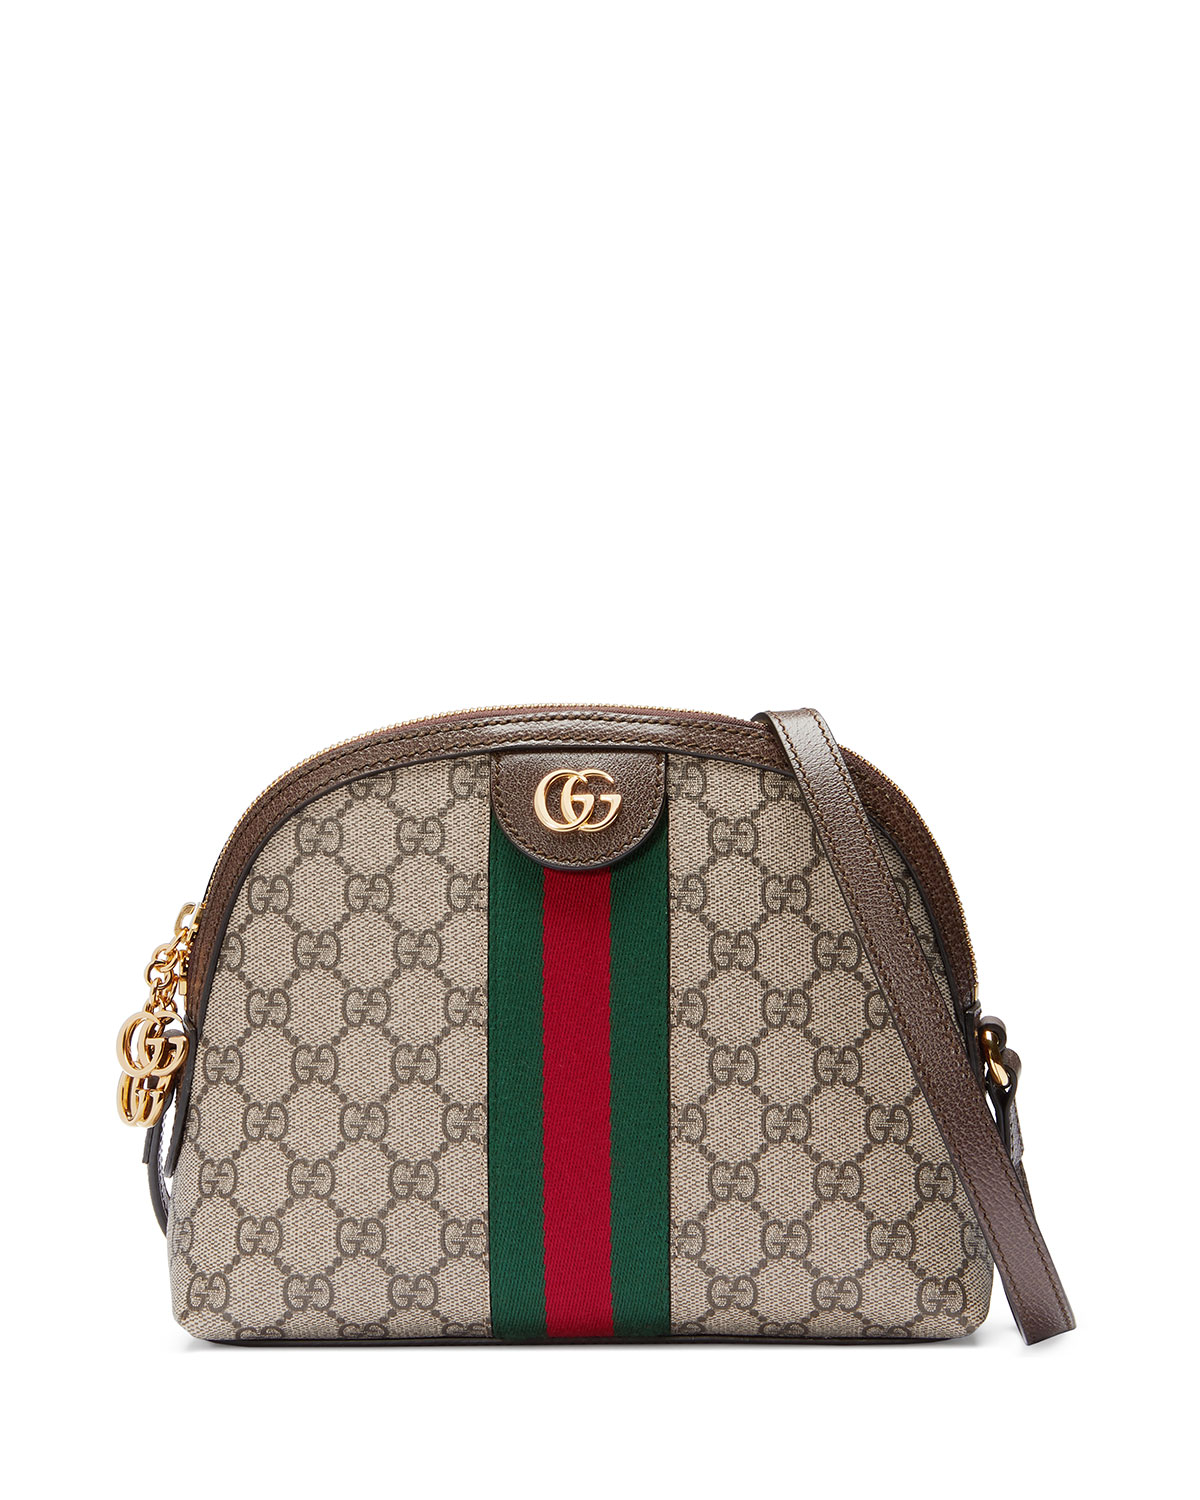 2ccbf7c384c Gucci Shoulder Bag